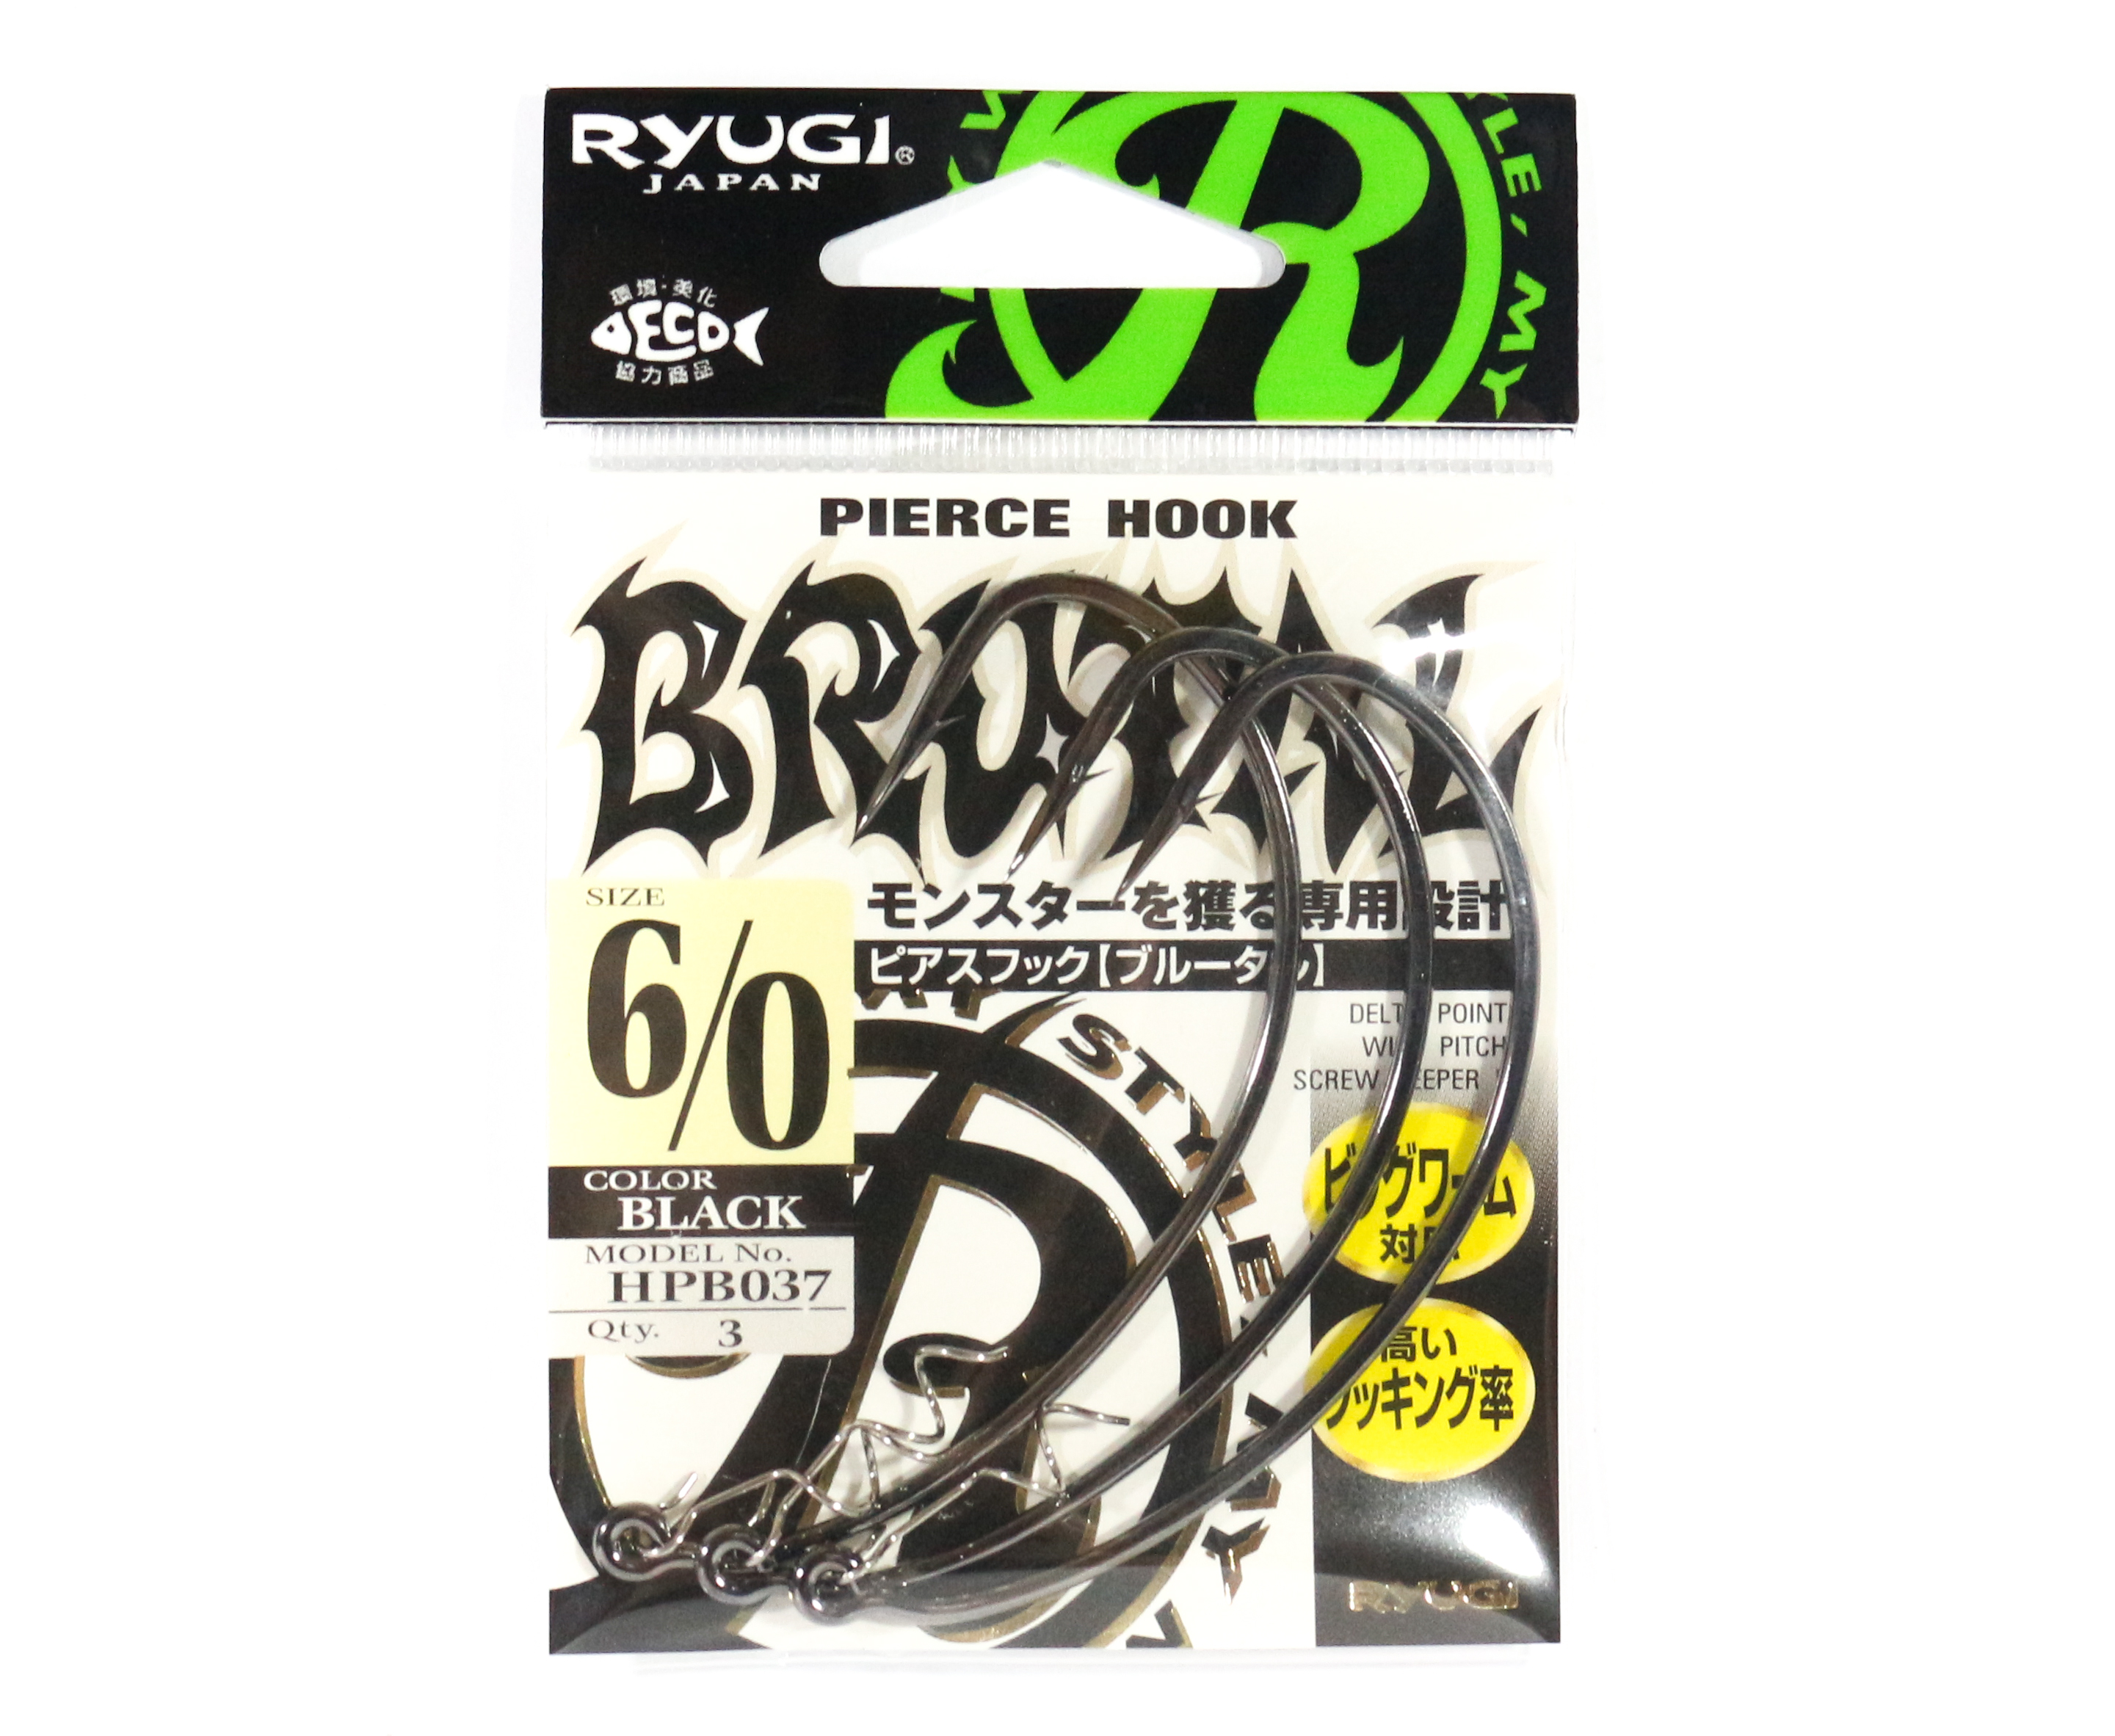 Ryugi HPB037 Pierce Brutal Hook Size 6/0 (7828)